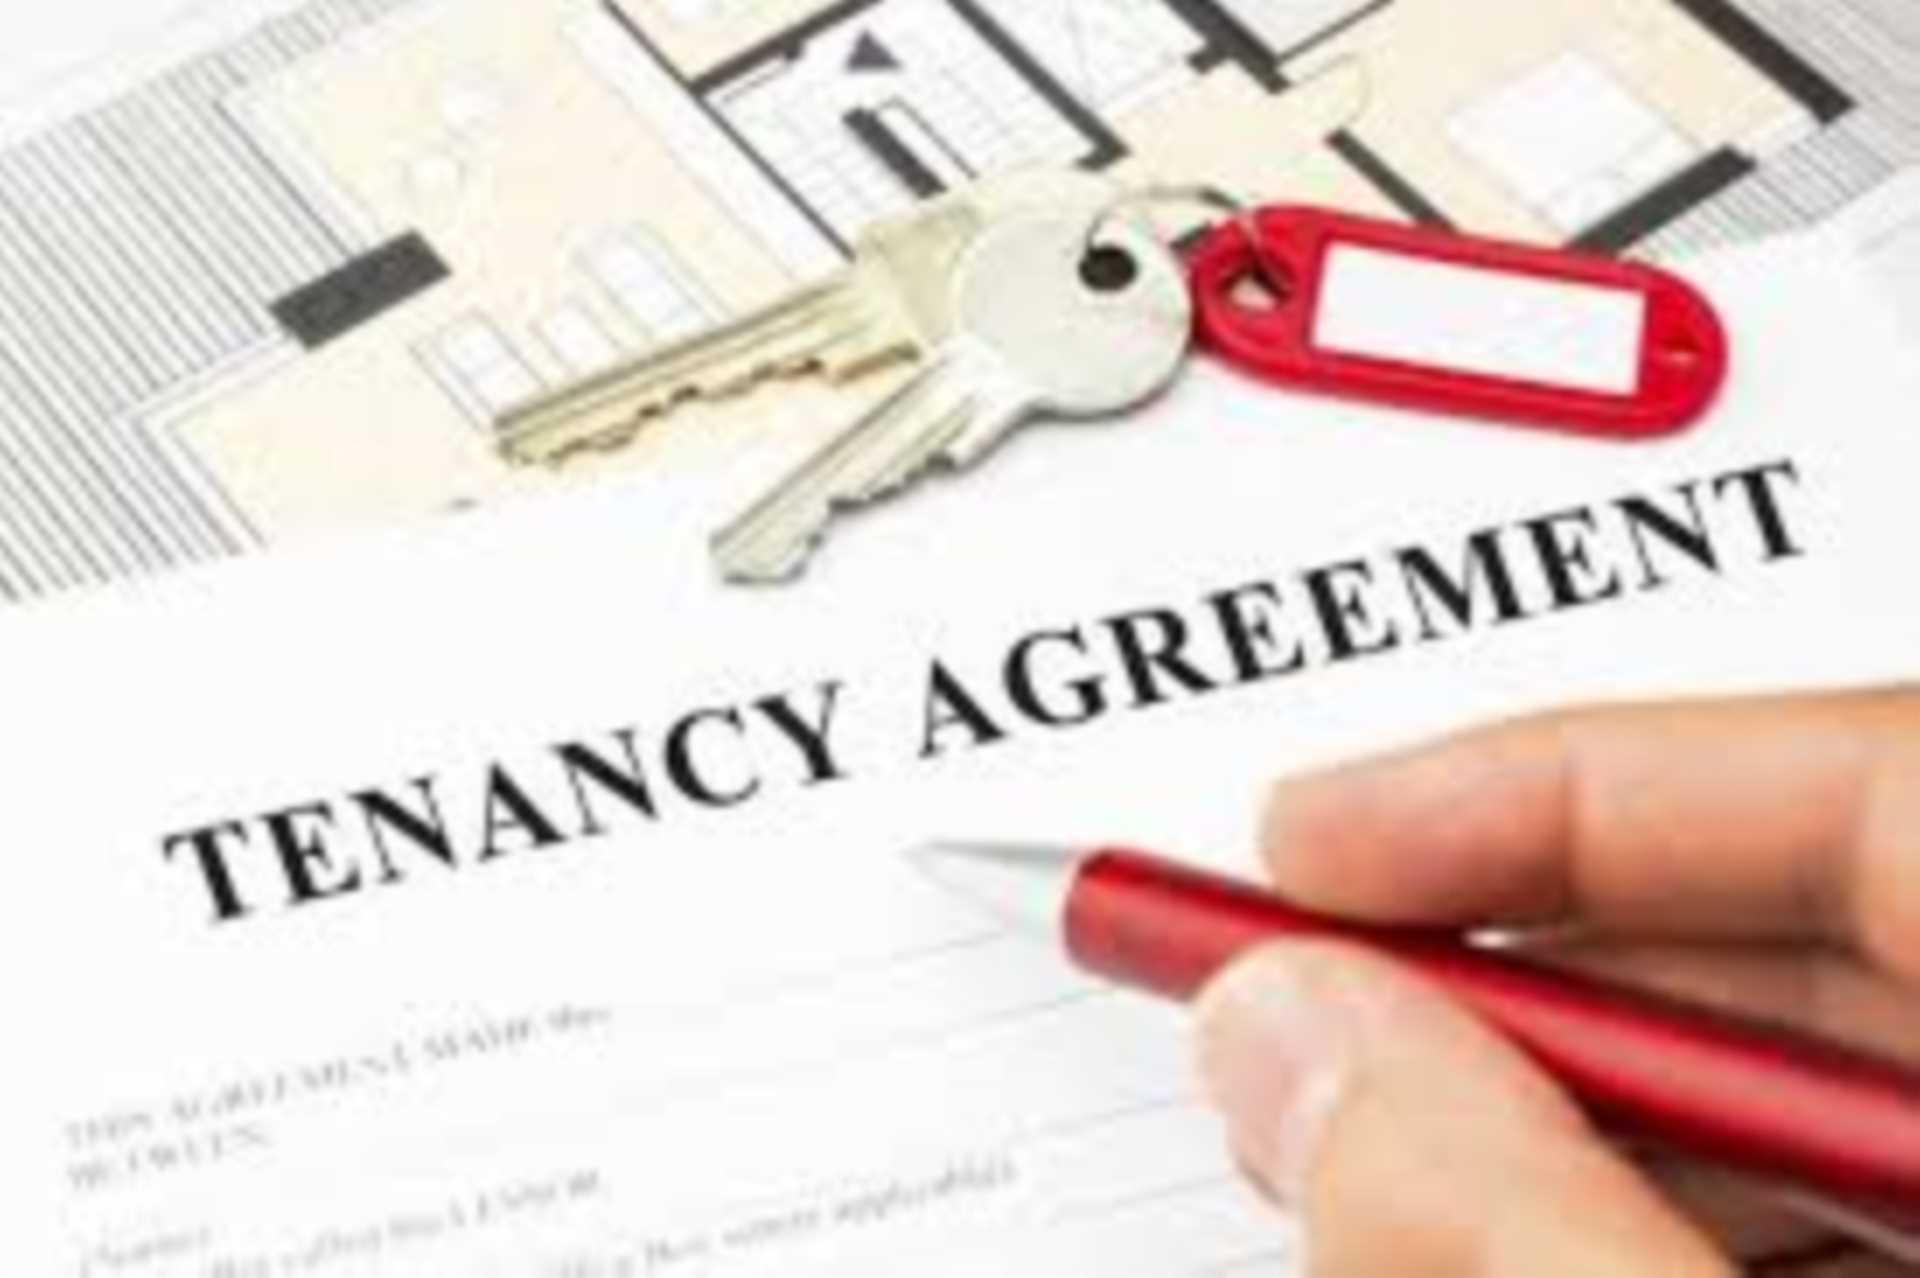 Landlords would you keep or loose your current great tenants for the sake of 4 months less tenancy..